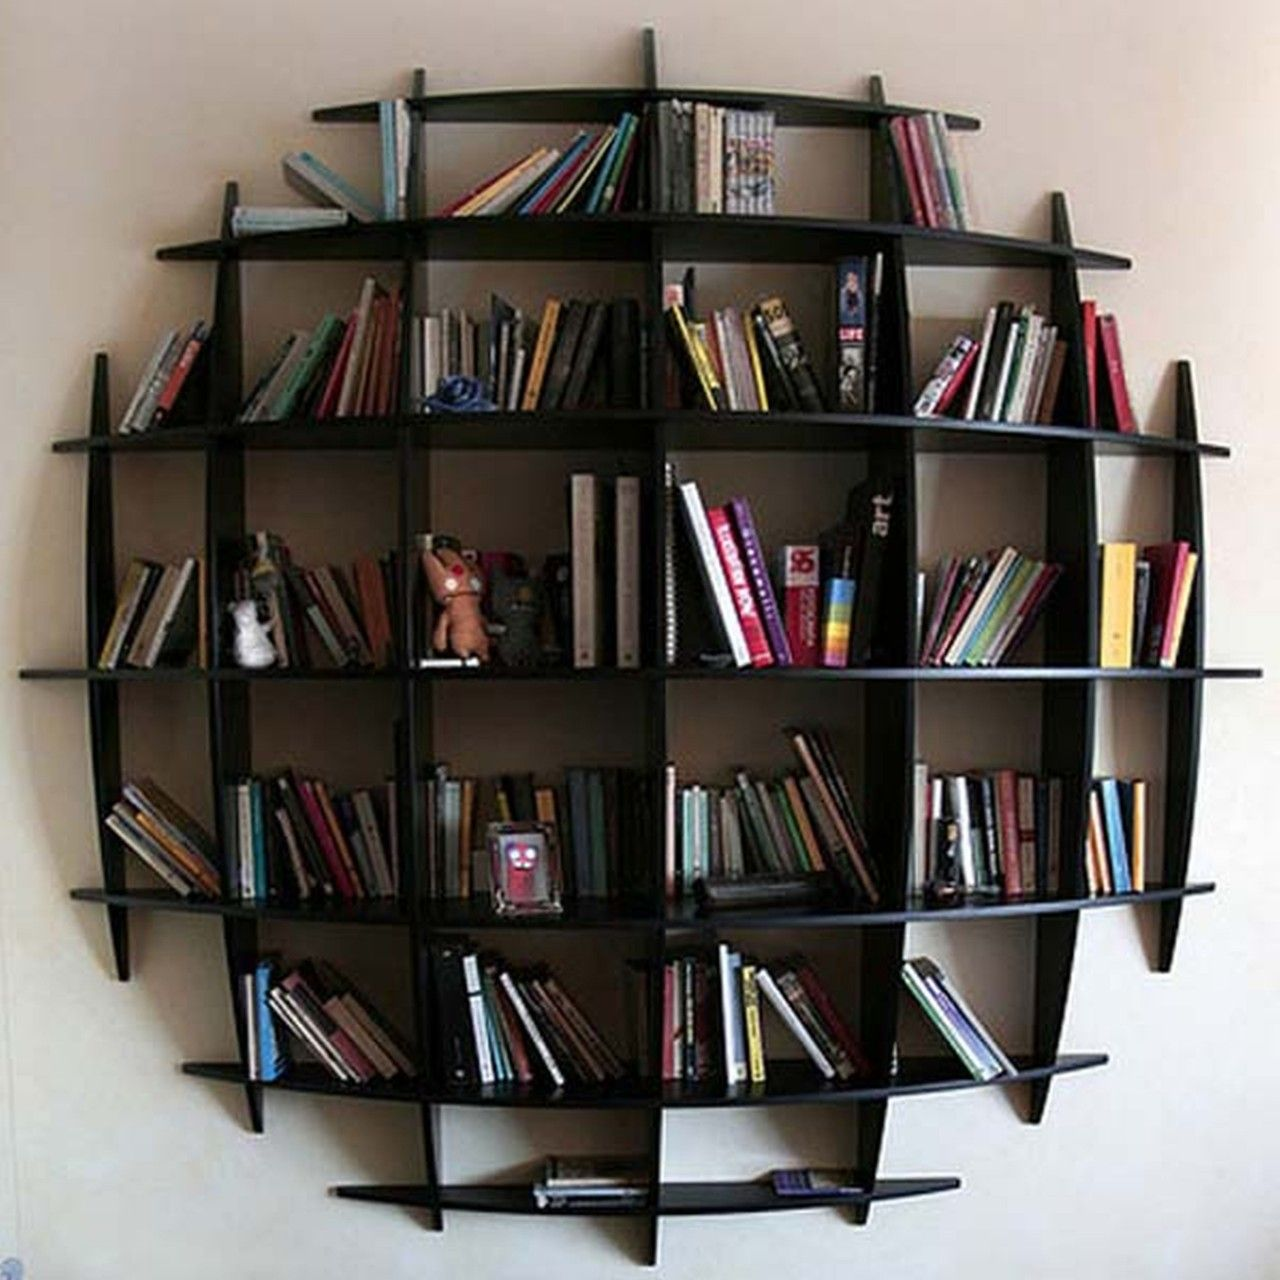 wallpaper bookshelf view bedrooms cool for larger ideas small